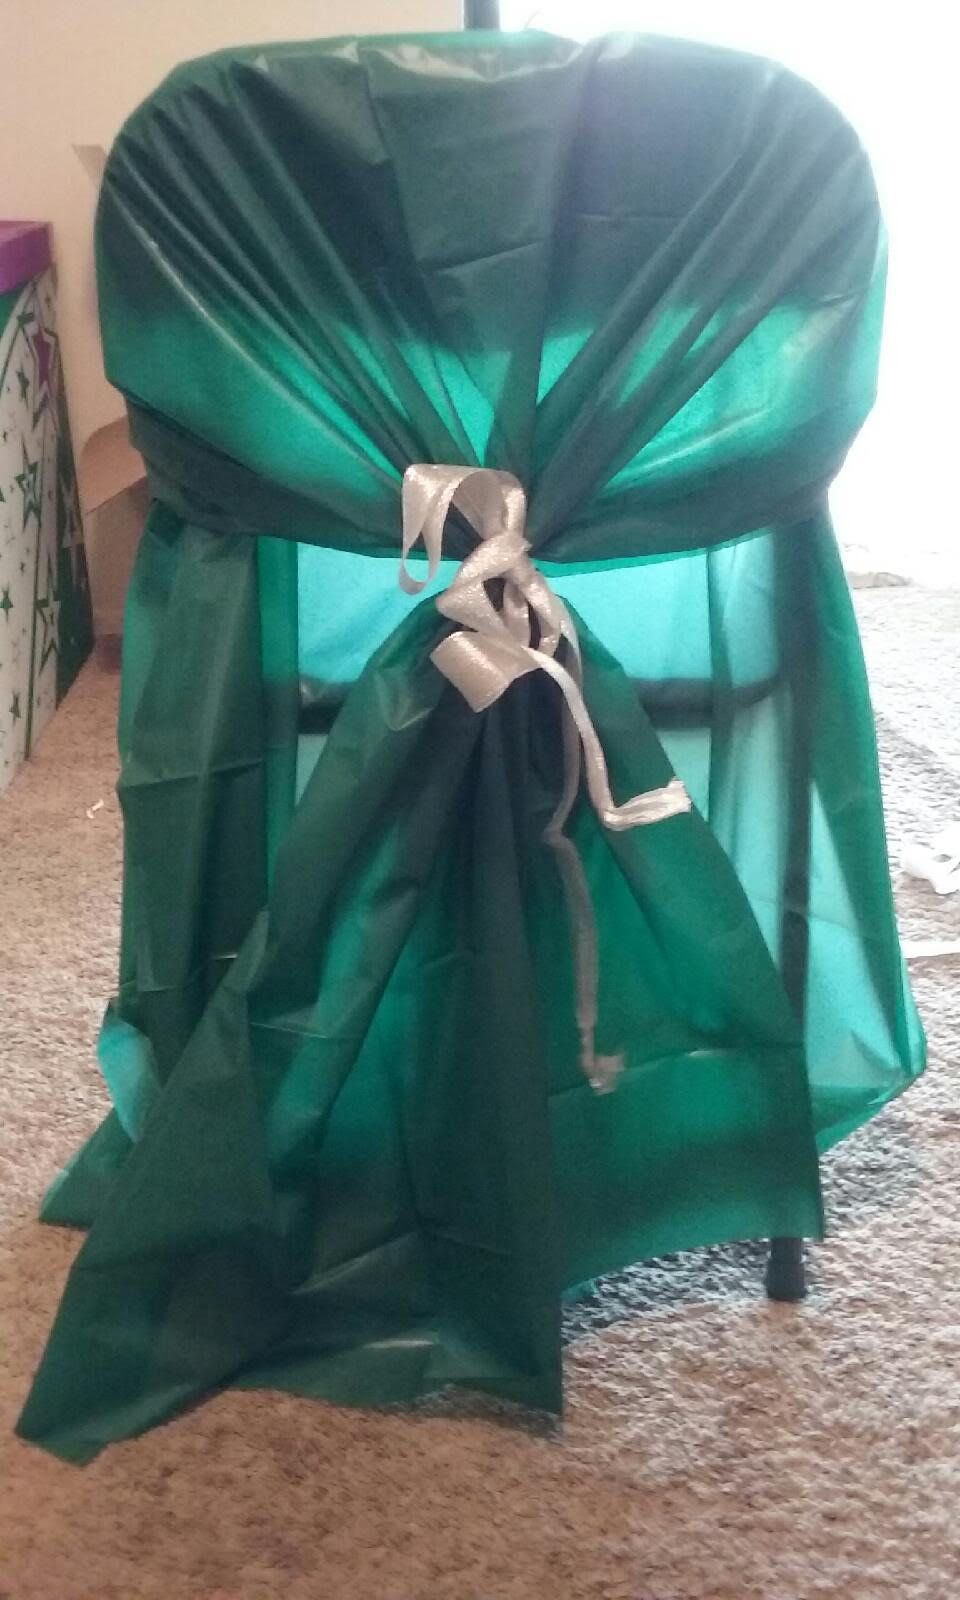 Cheap Chair Cover Made With 54x54 Plastic Table Cloth And Ribbon